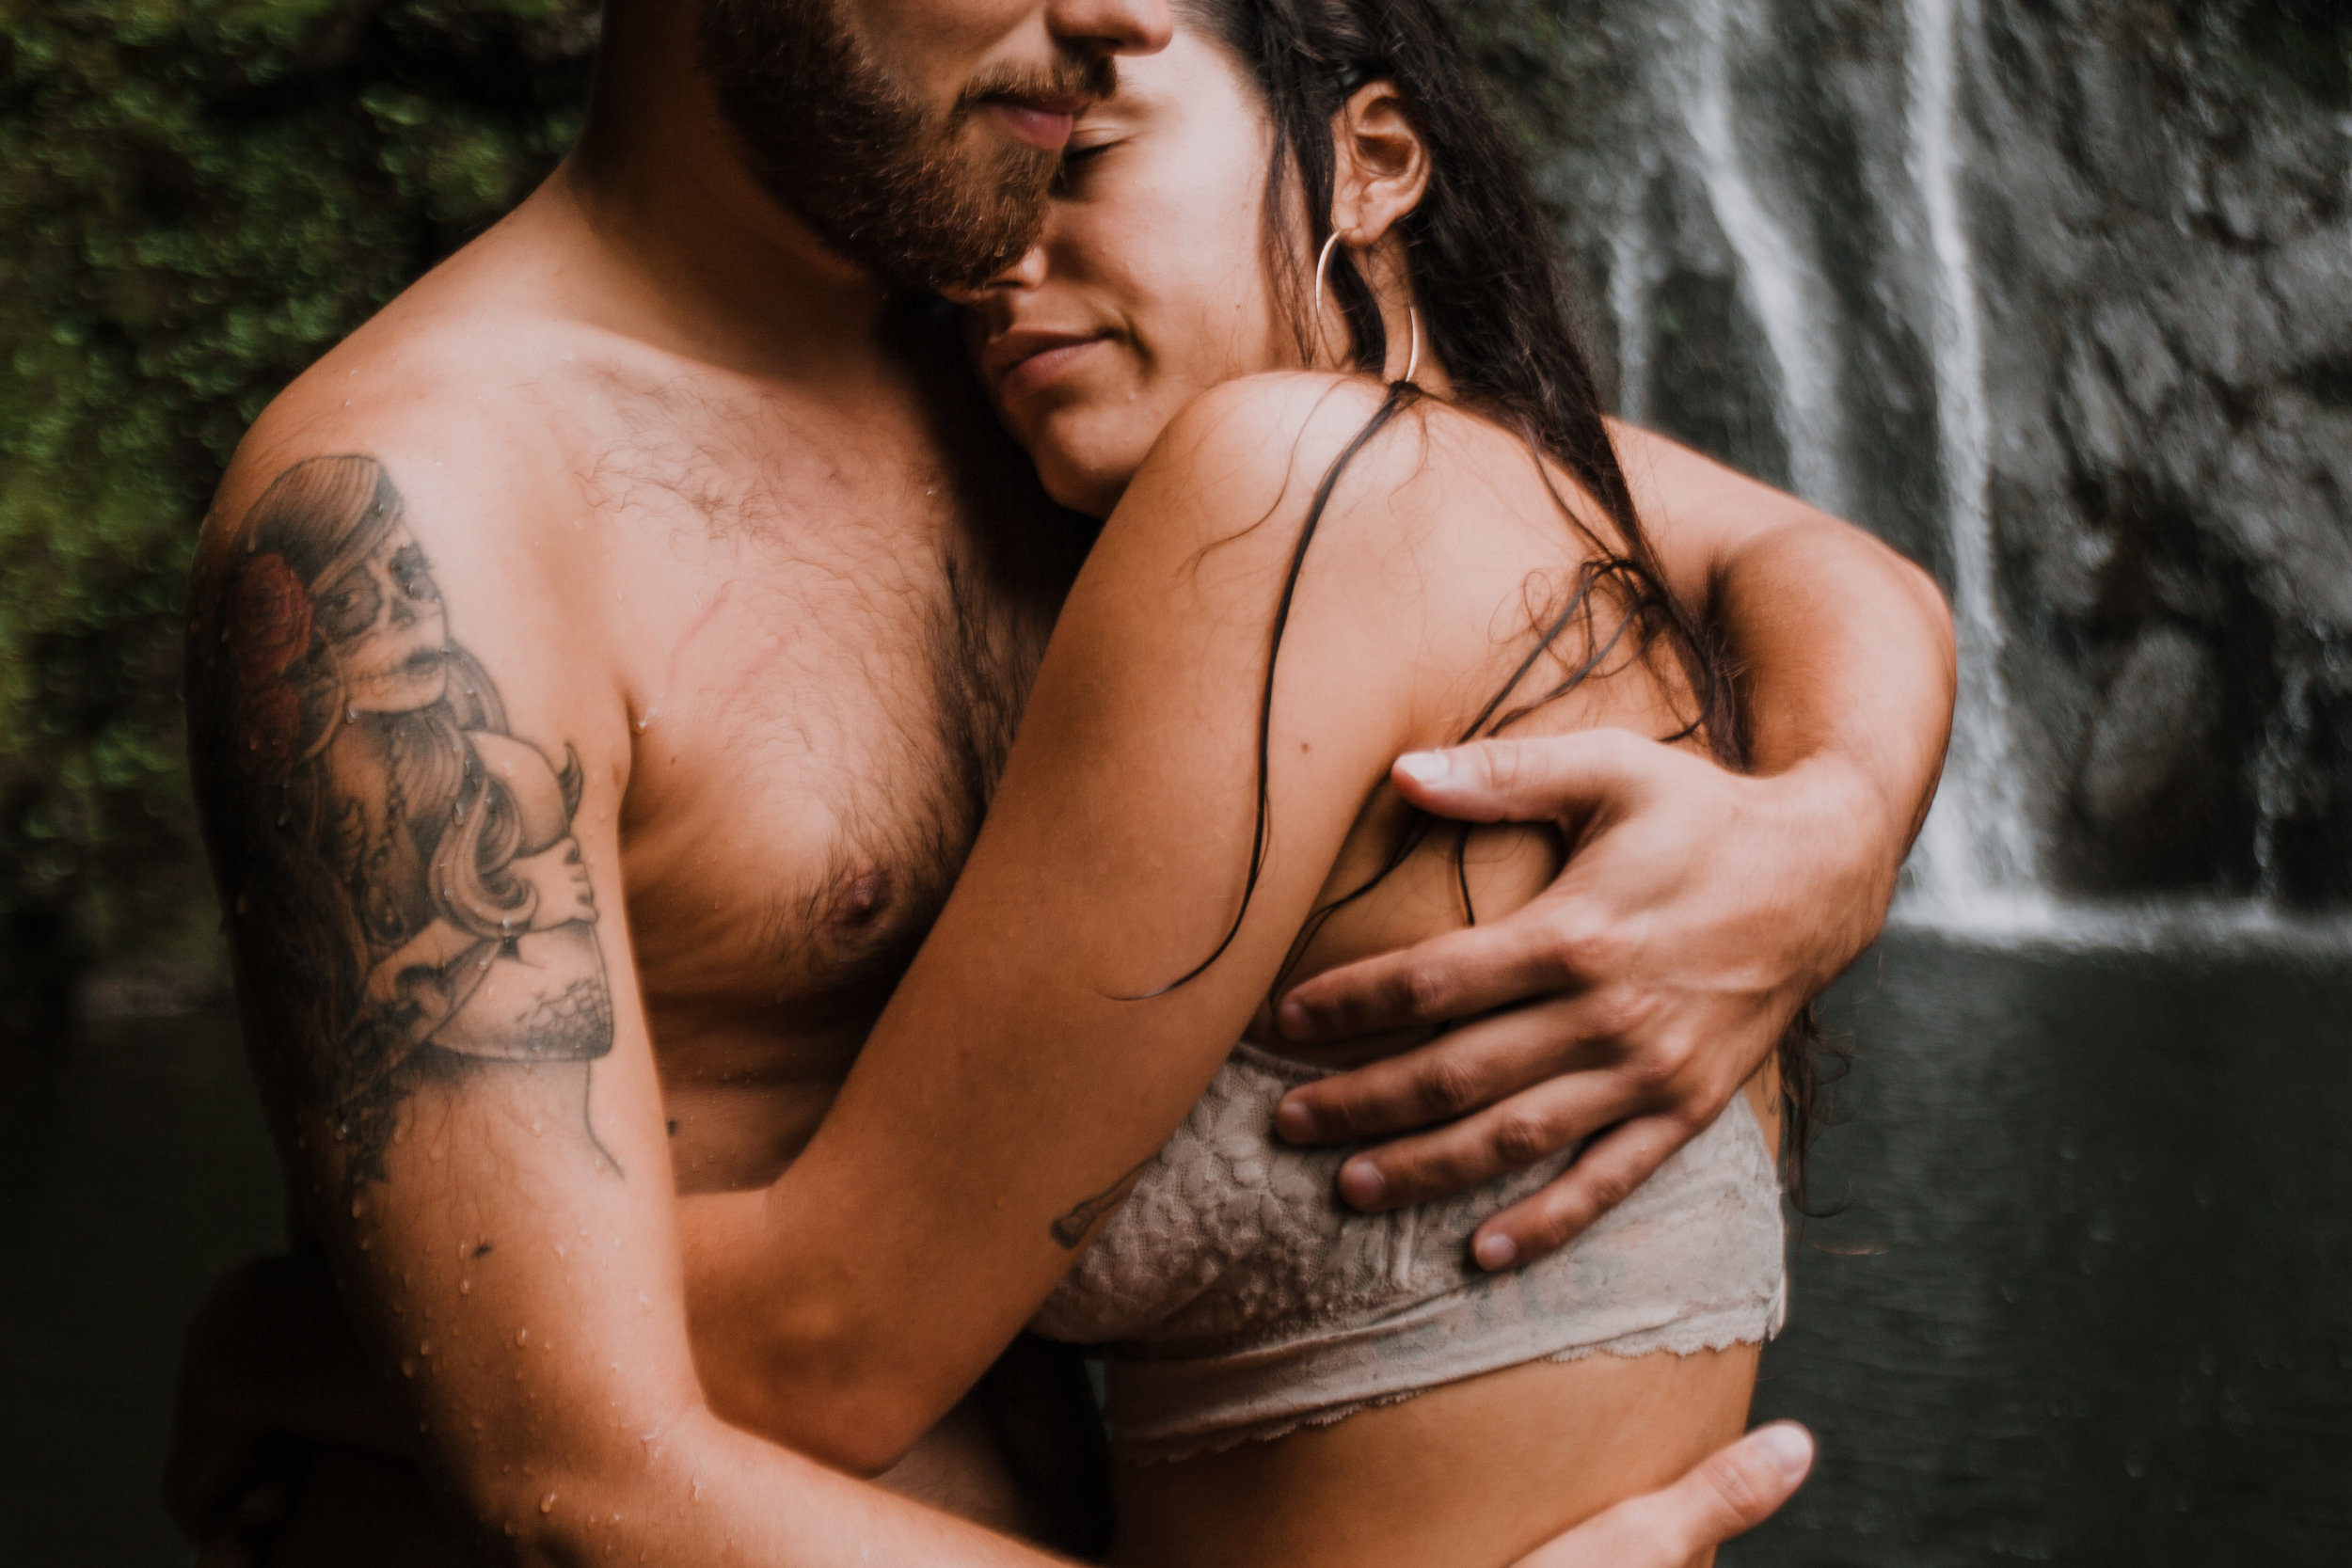 couple hugging, hana maui waterfall, hawaii waterfall, road to hana, maui waterfall, hawaii wedding photographer, hawaii elopement photographer, maui wedding, maui engagements, maui elopement